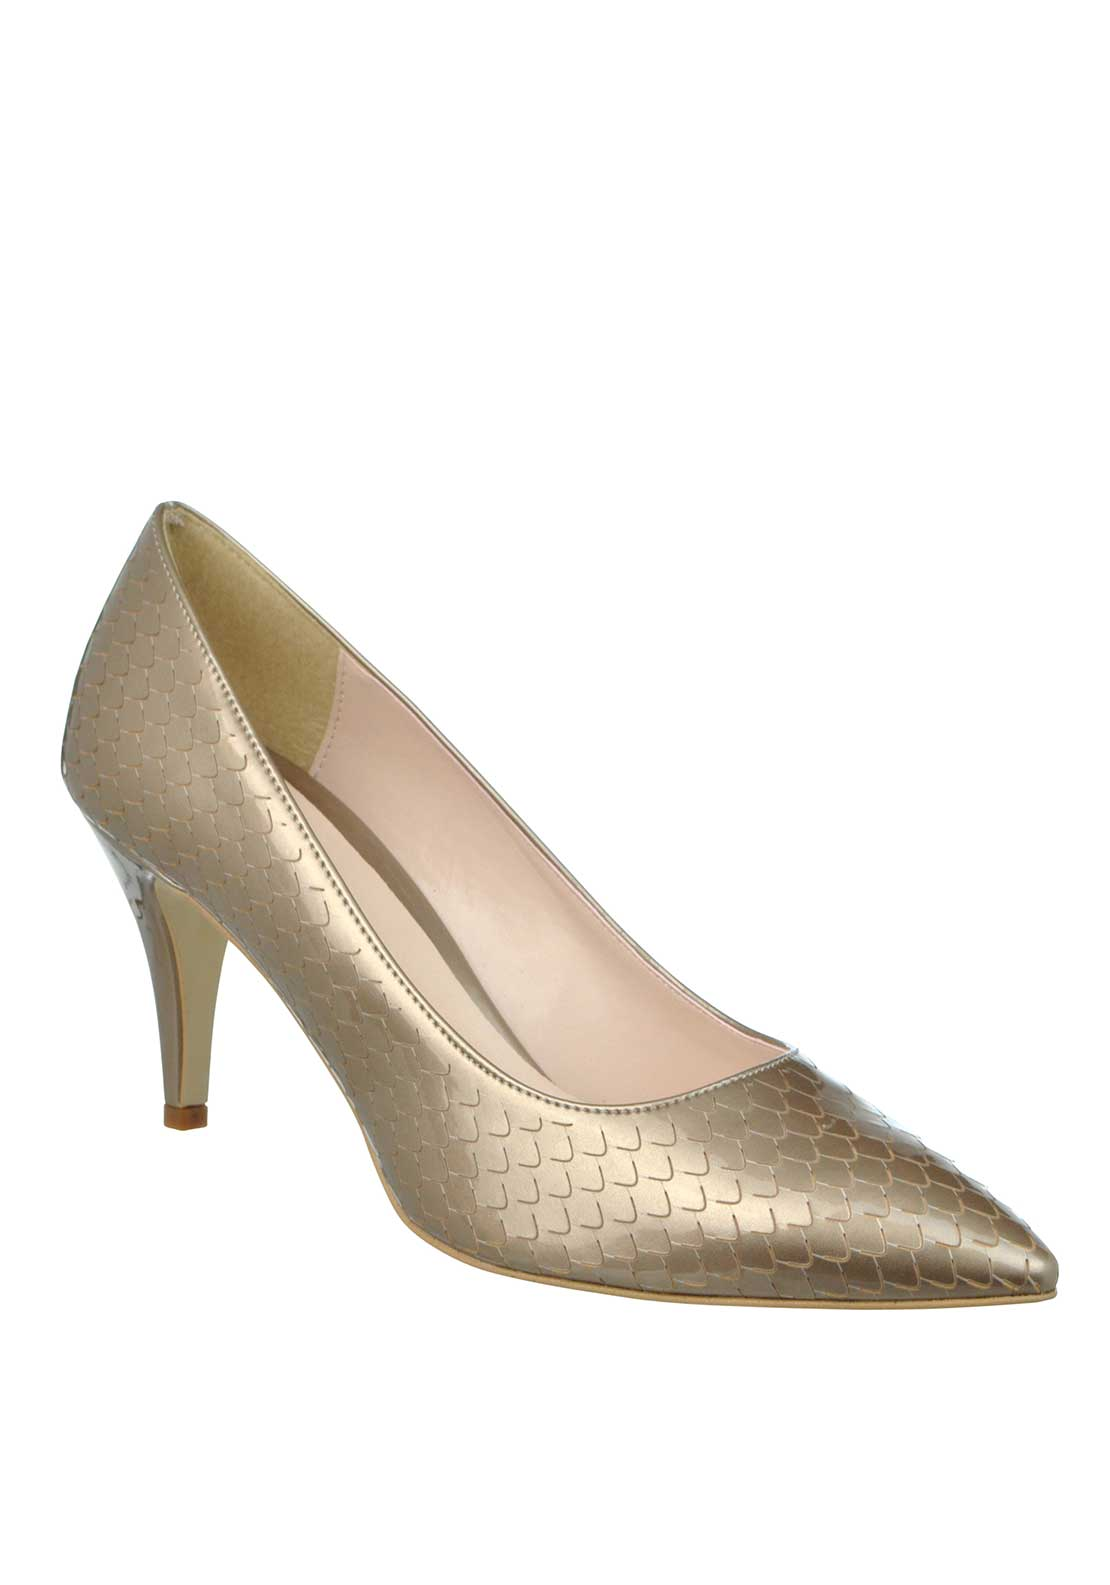 McElhinney's Patent Mermaid Print Pointed Toe Low Heeled Shoes, Taupe